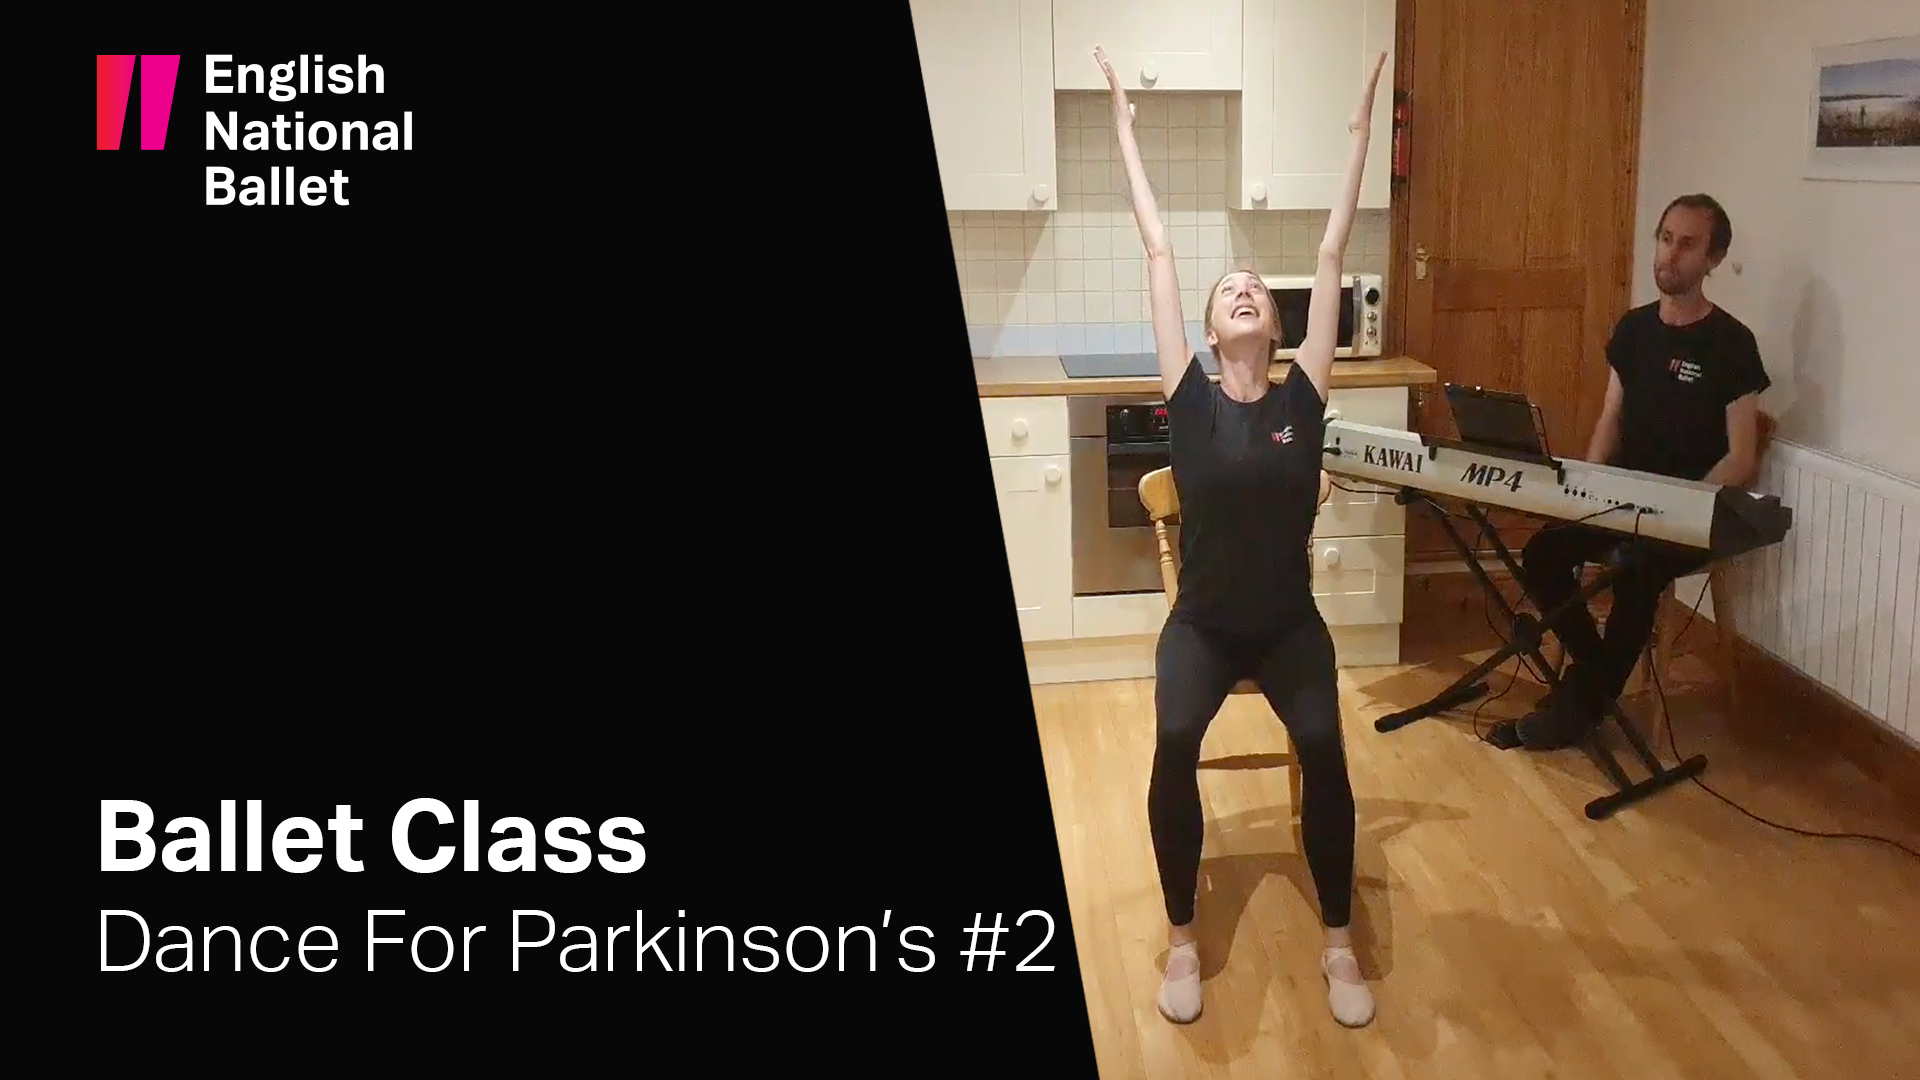 Dance For Parkinson's Class #2: ENB at Home | English National Ballet